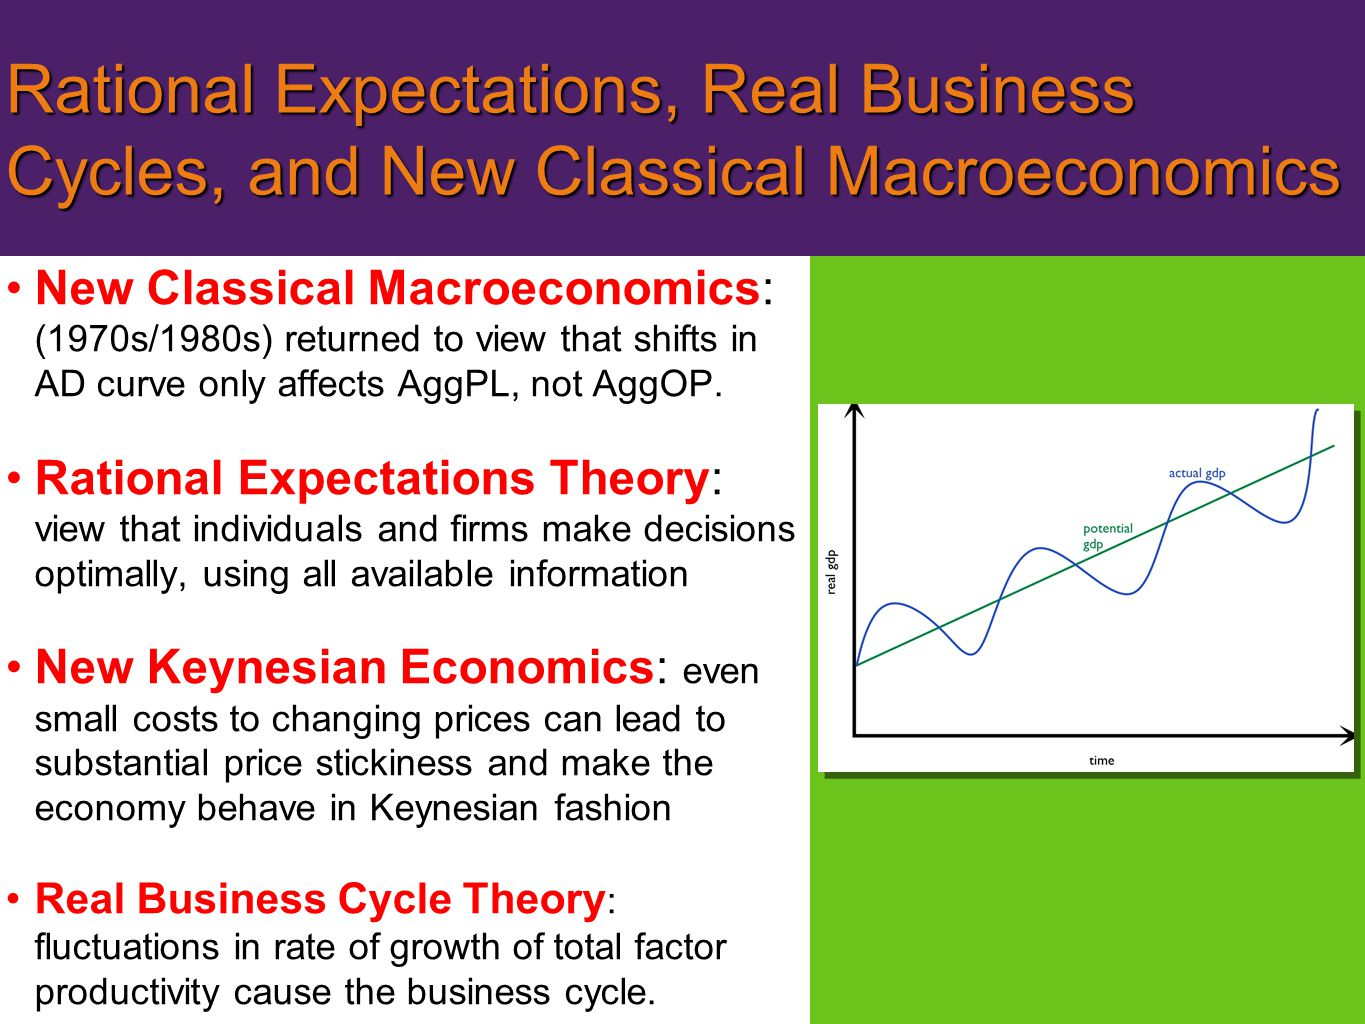 Rational Expectations, Real Business Cycles, and New Classical Macroeconomics New Classical Macroeconomics: (1970s/1980s) returned to view that shifts